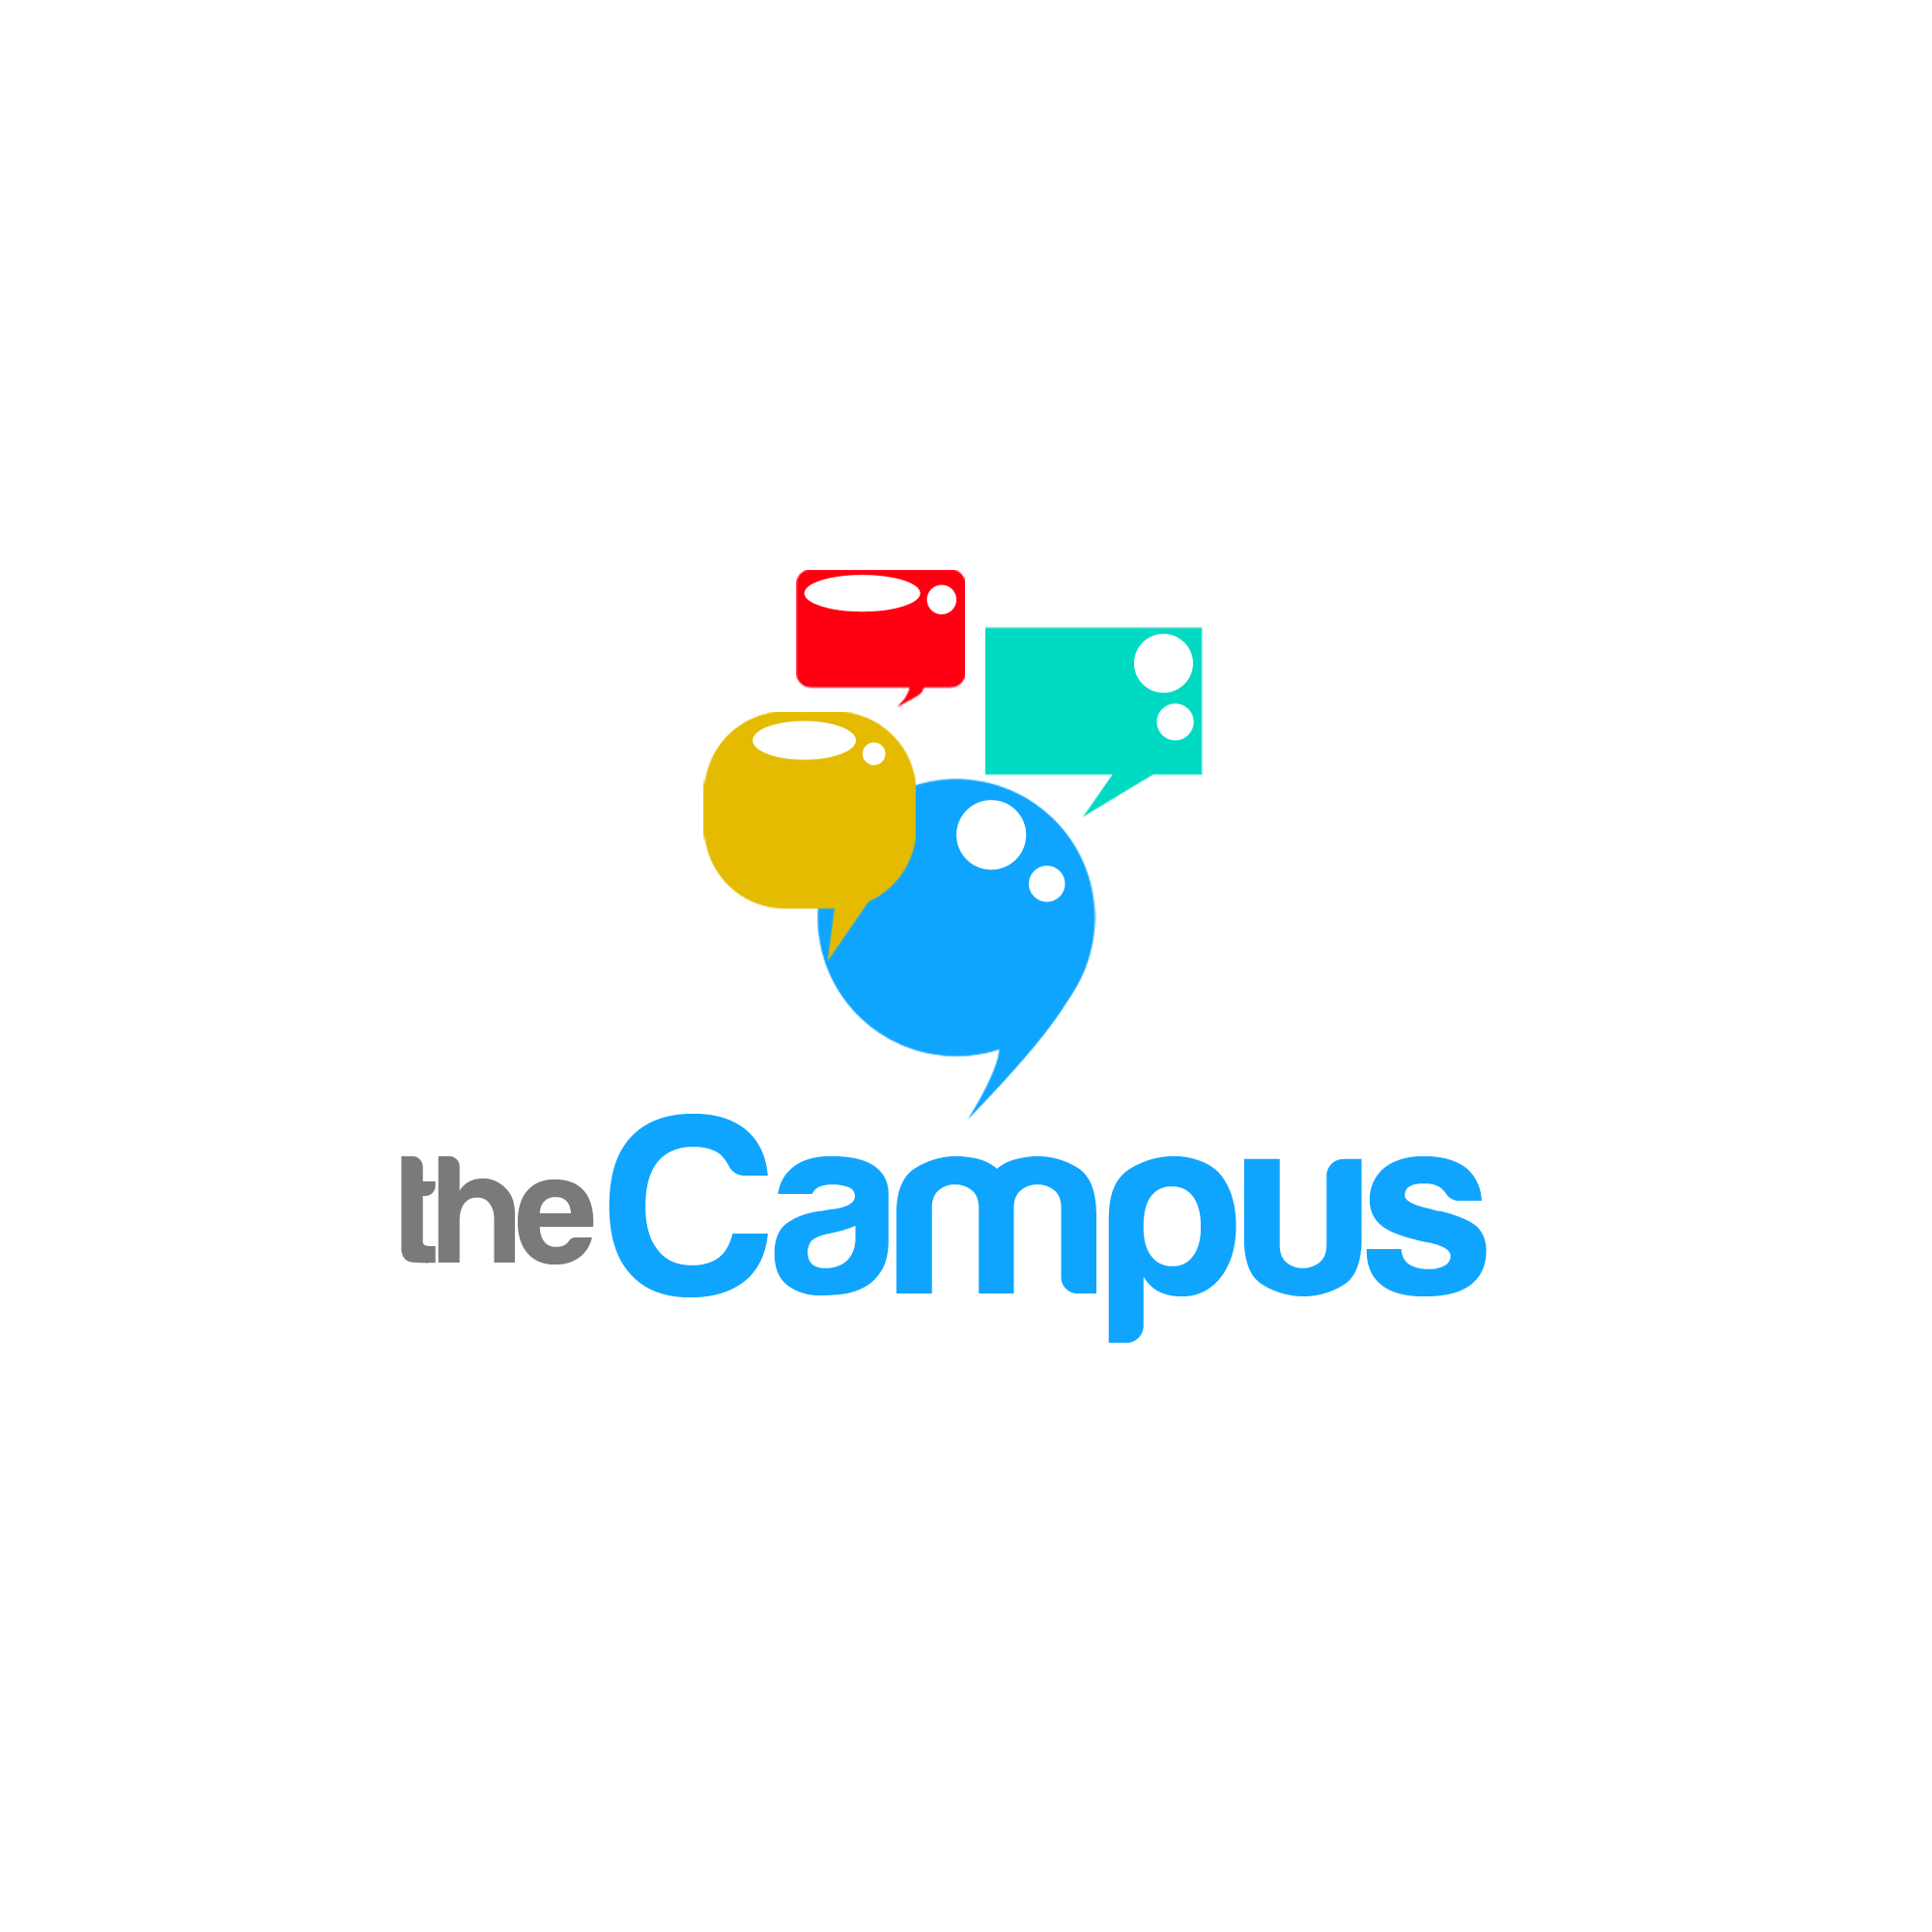 Logo Design by Kenneth Joel - Entry No. 114 in the Logo Design Contest theCampus Logo Design.